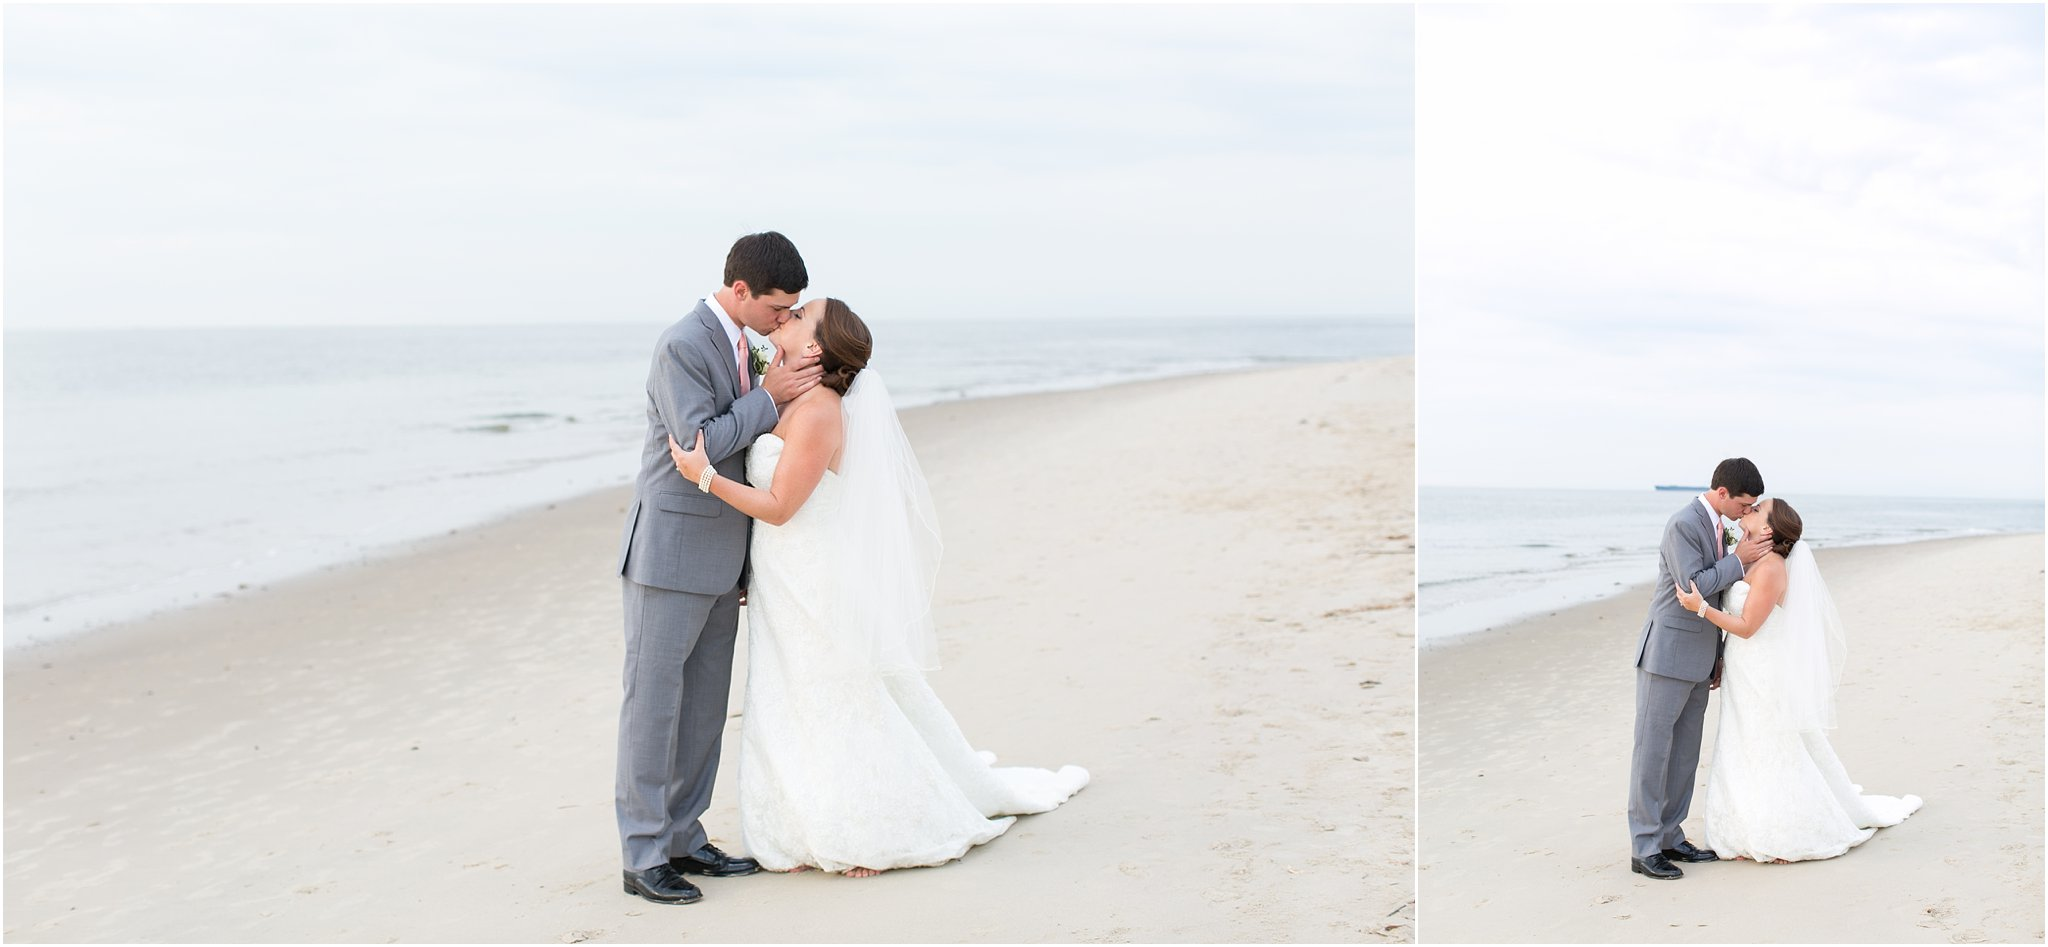 jessica_ryan_photography_wedding_photography_virginiabeach_virginia_candid_authentic_wedding_portraits_marina_shores_yacht_club_chesapeake_bay_1881